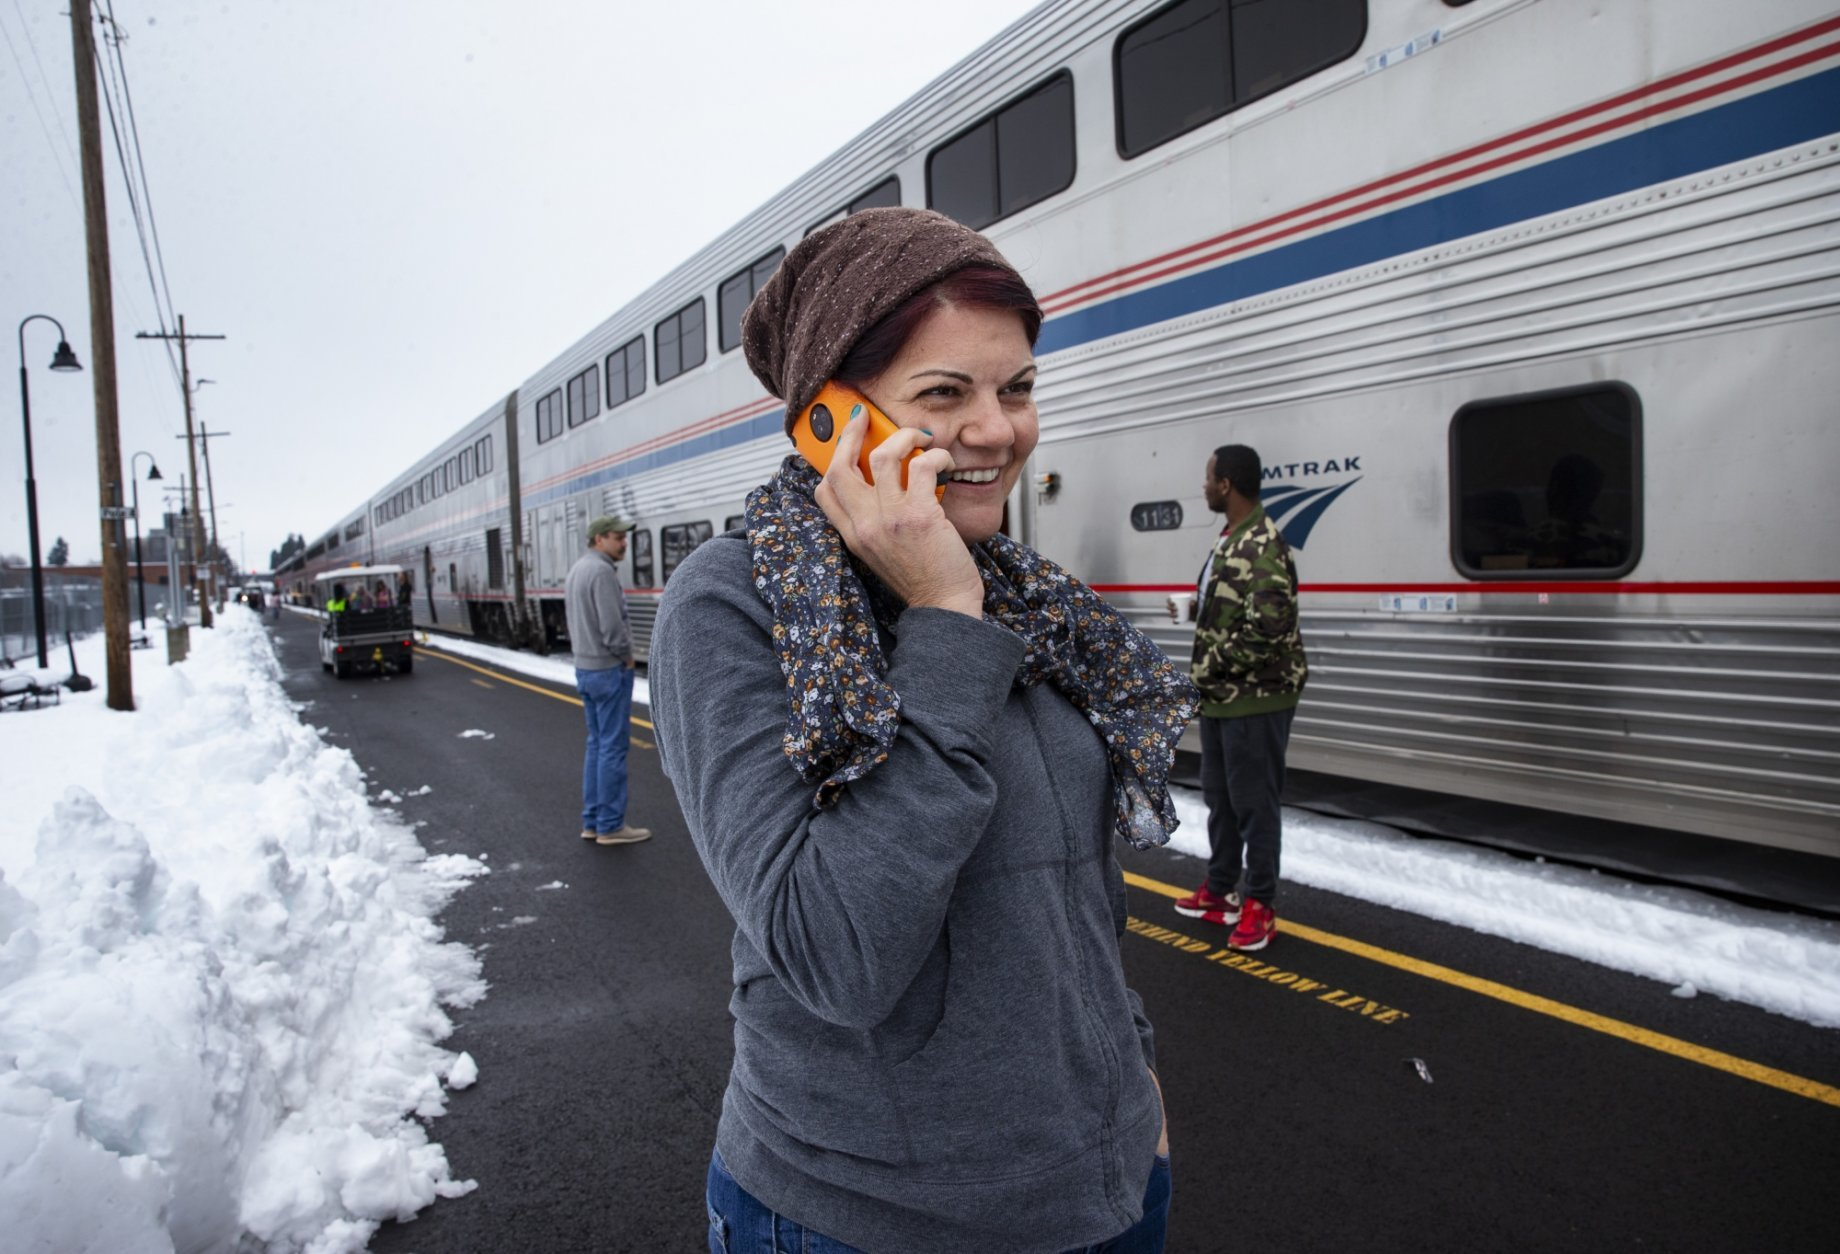 Tracy Rhodes, center, talks on the her phone while arriving in Eugene, Ore Tuesday, Feb. 26, 2019 after being stranded on the train overnight in the mountains east of Eugene, Ore. (AP Photo/Chris Pietsch)